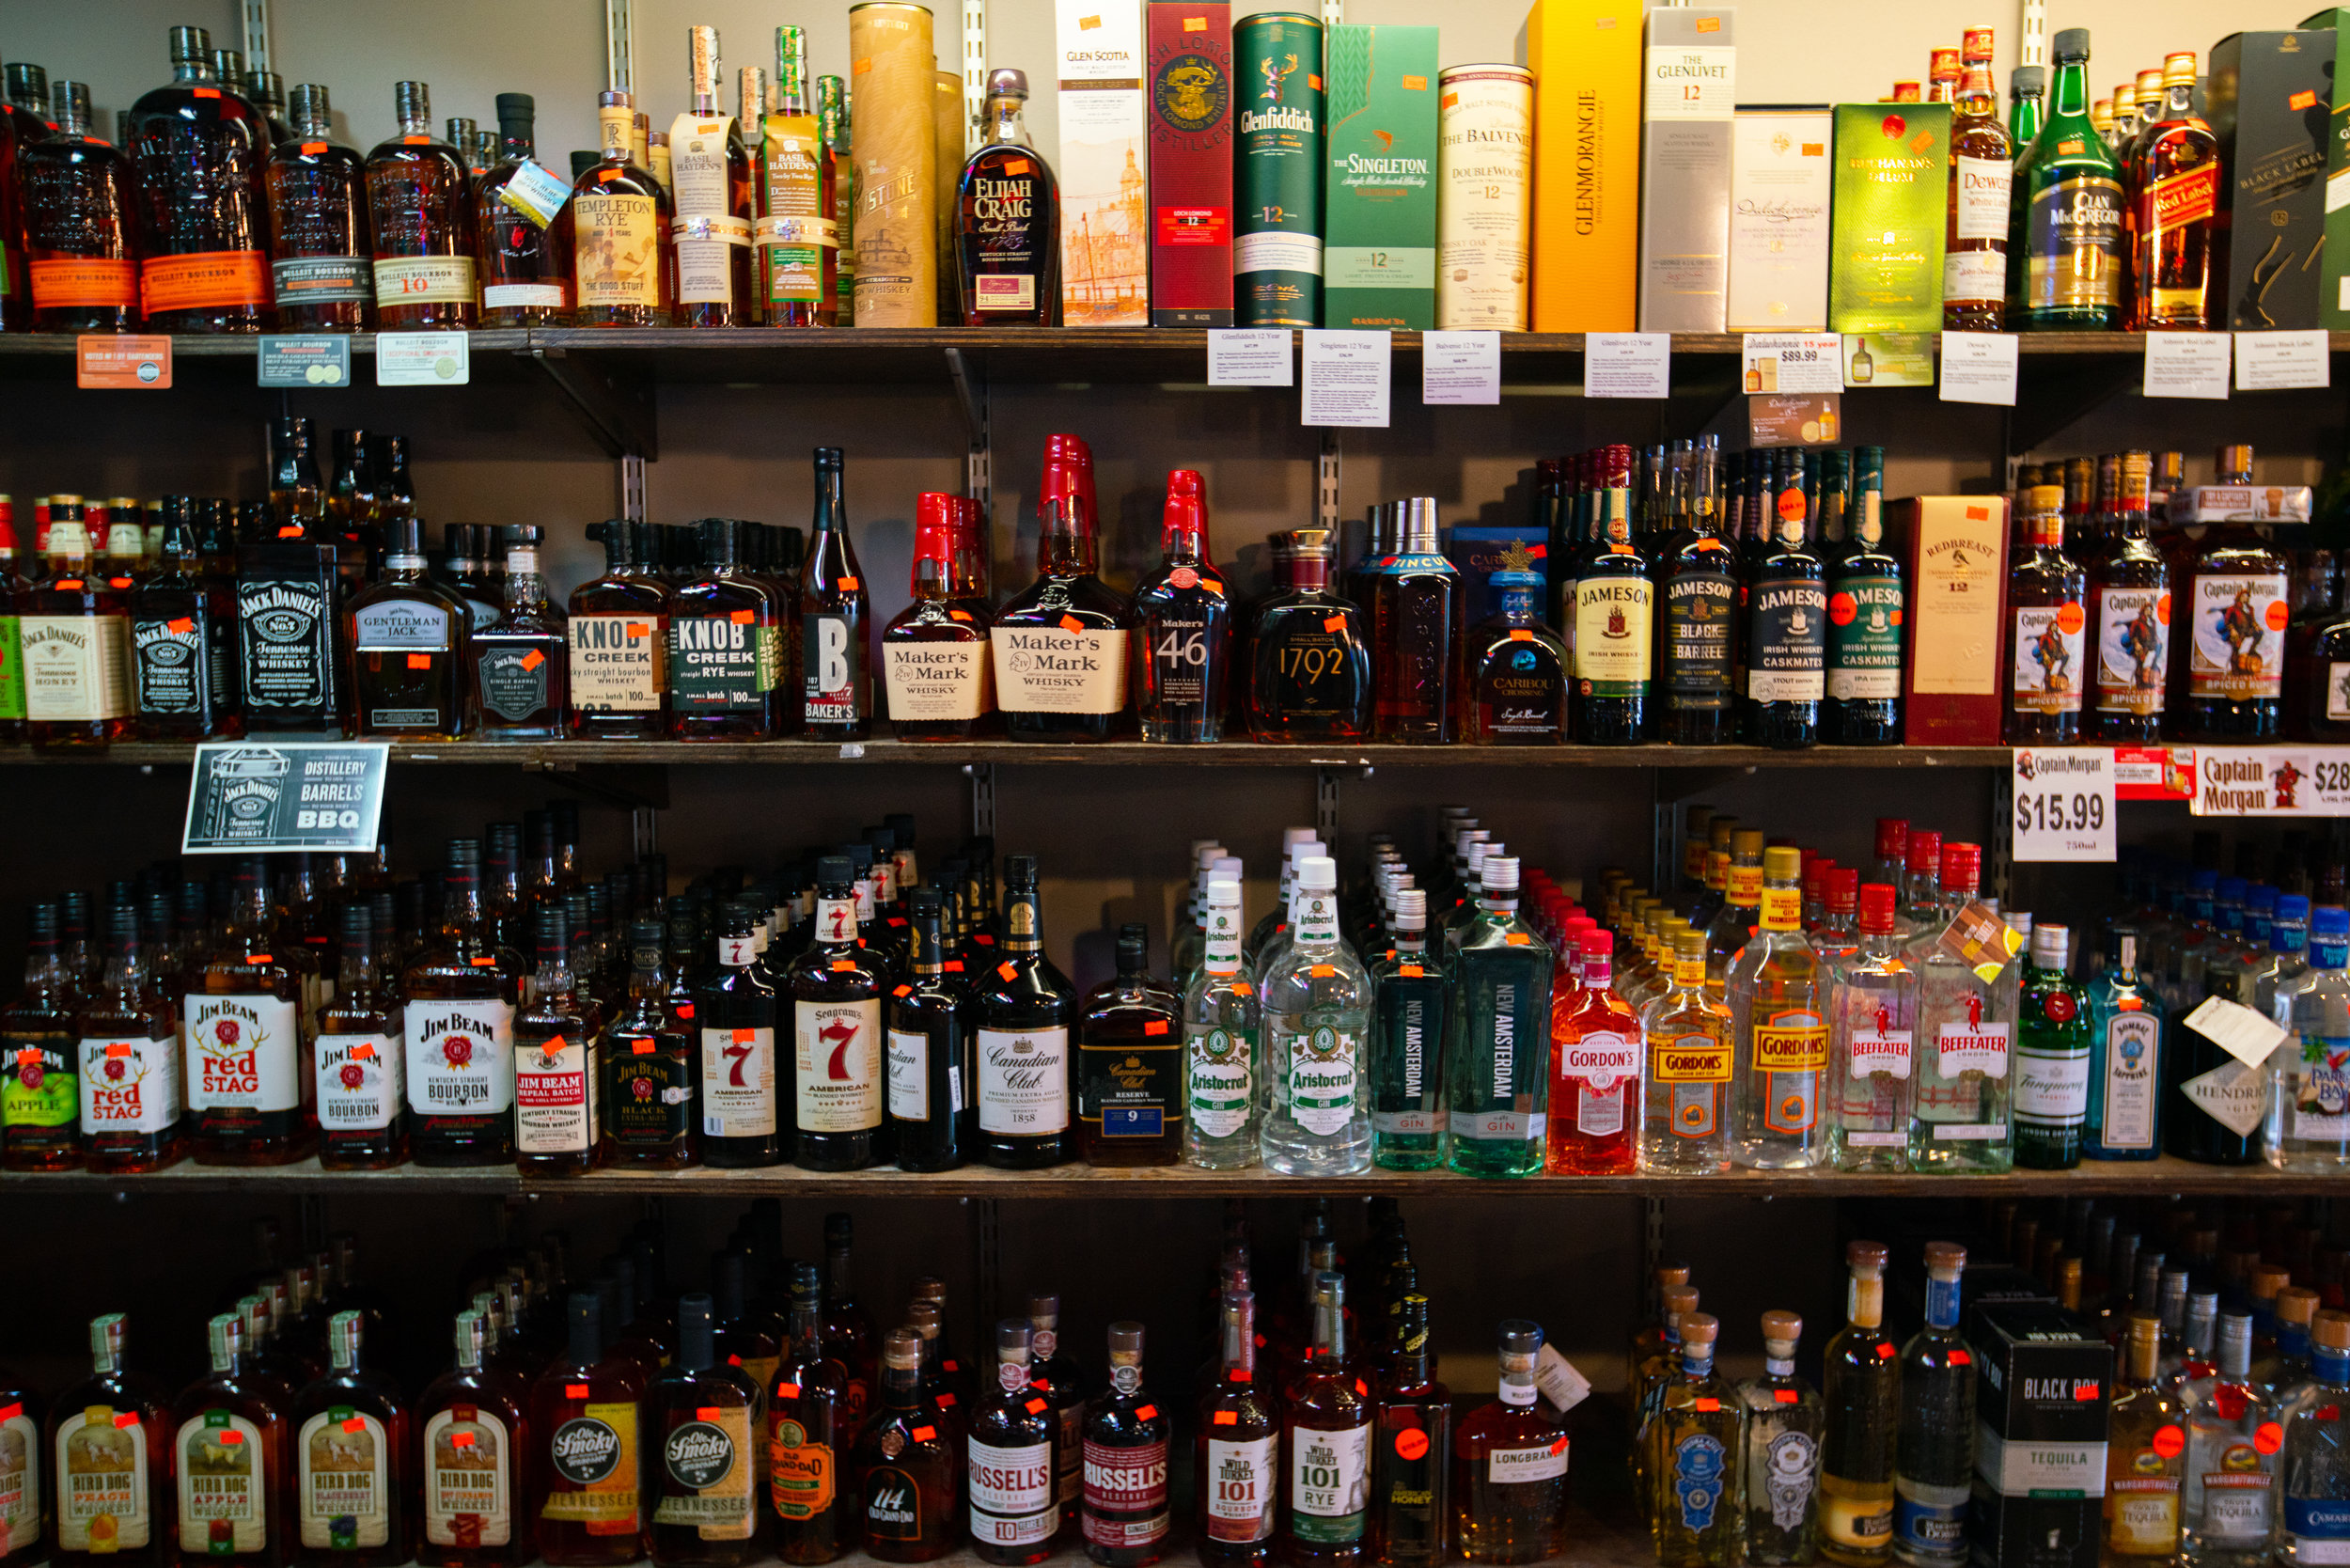 liqour on shelf.jpg